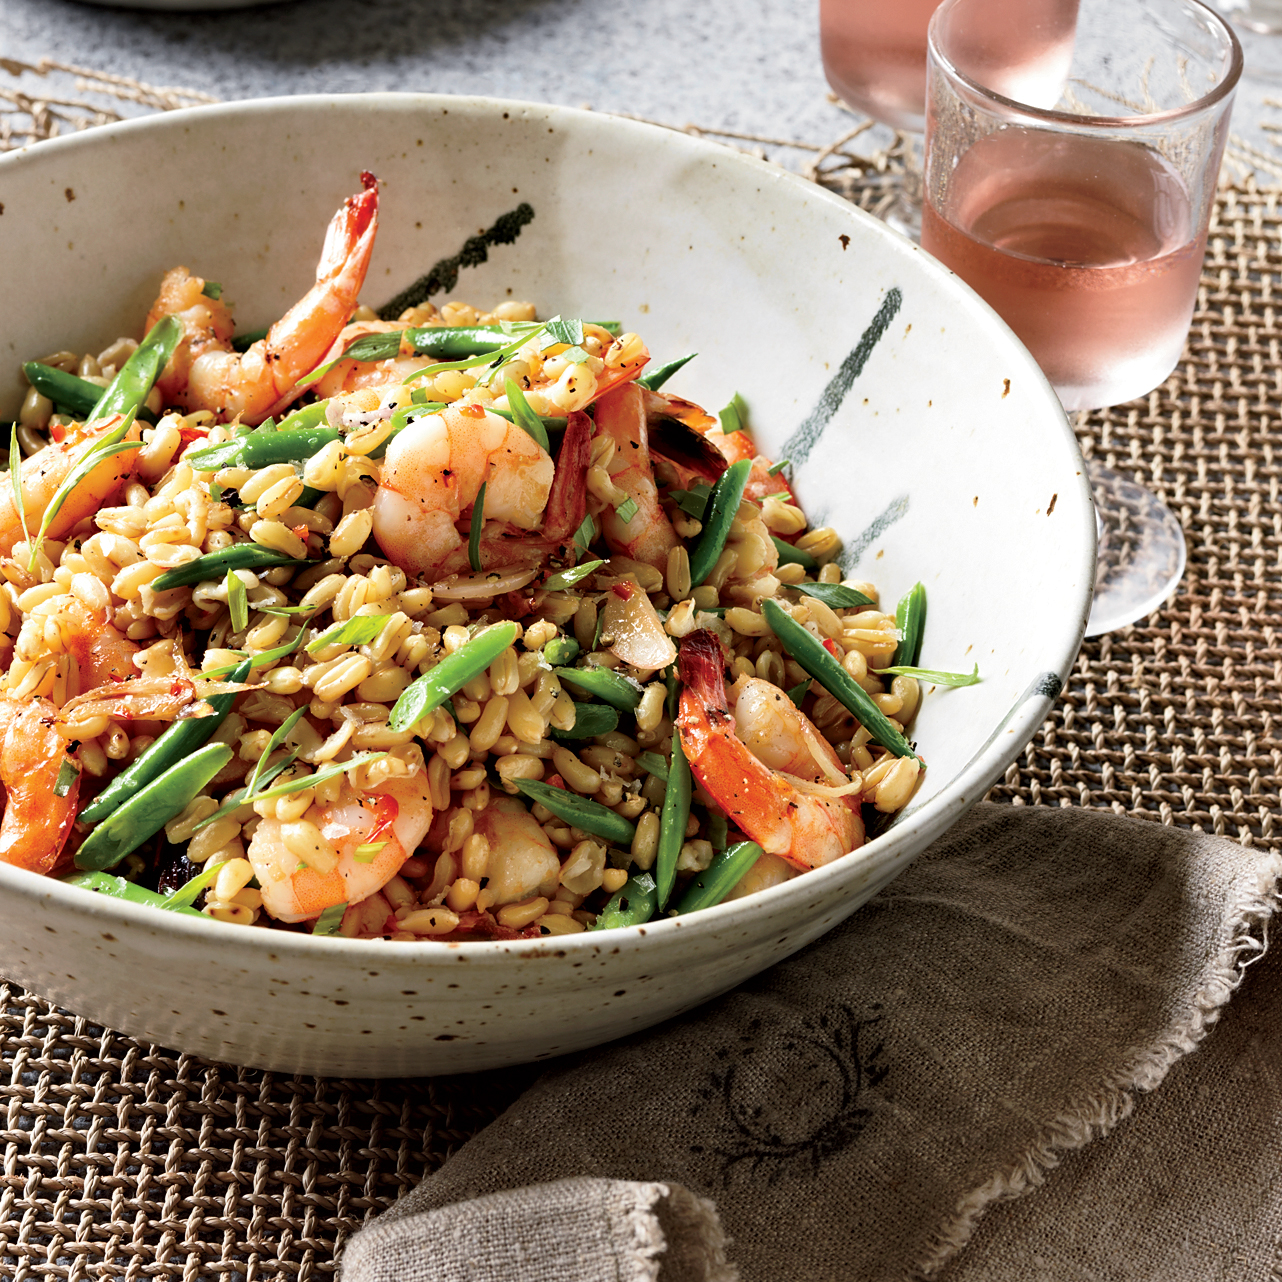 201110-r-warm-shrimp-salad-with-kamut-red-chile-and-tarragon.jpg